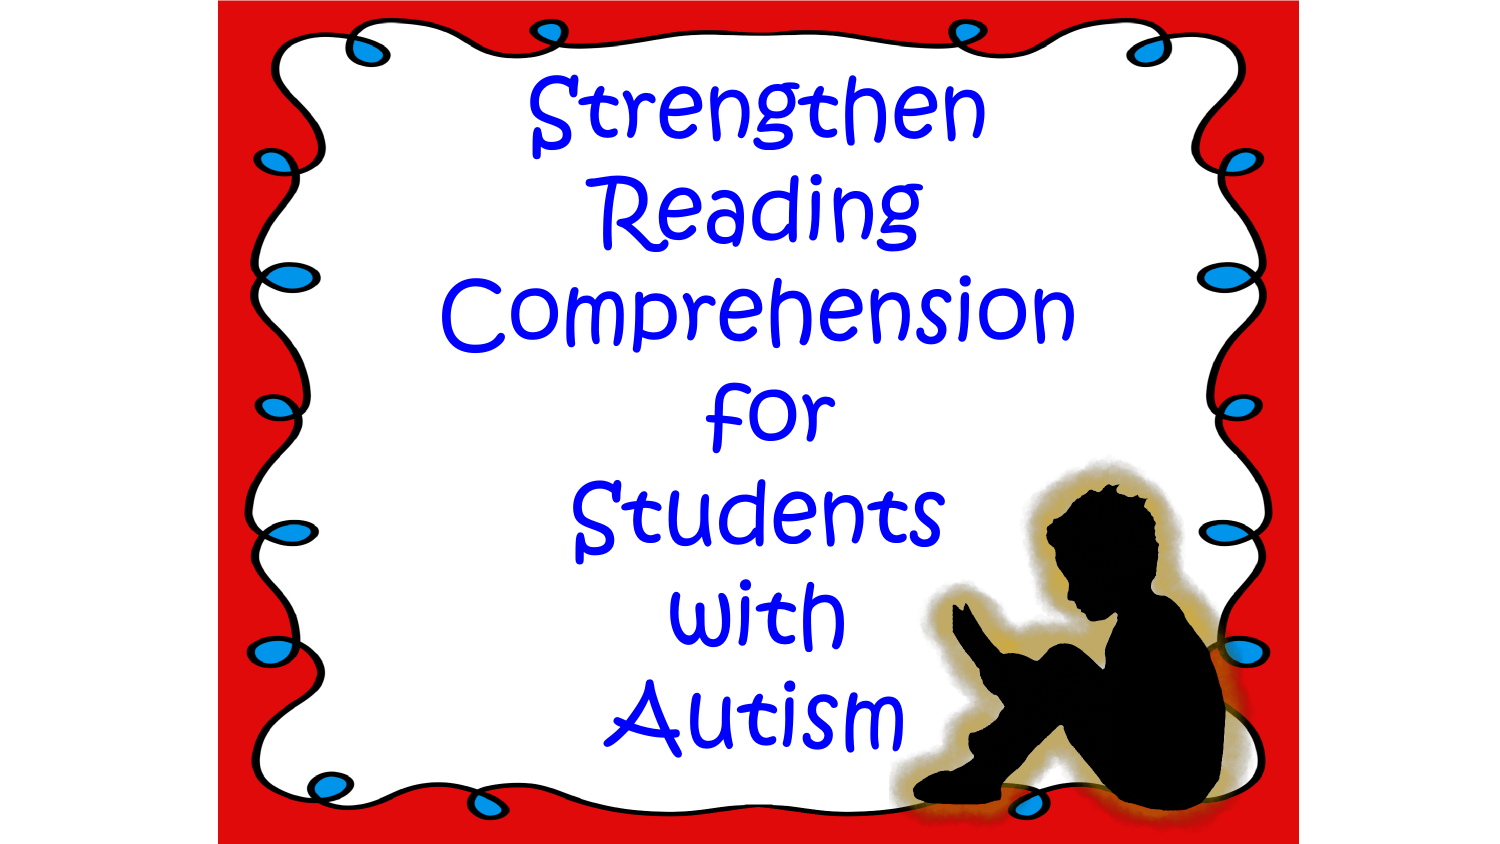 Strengthening Reading Comprehension For Students With